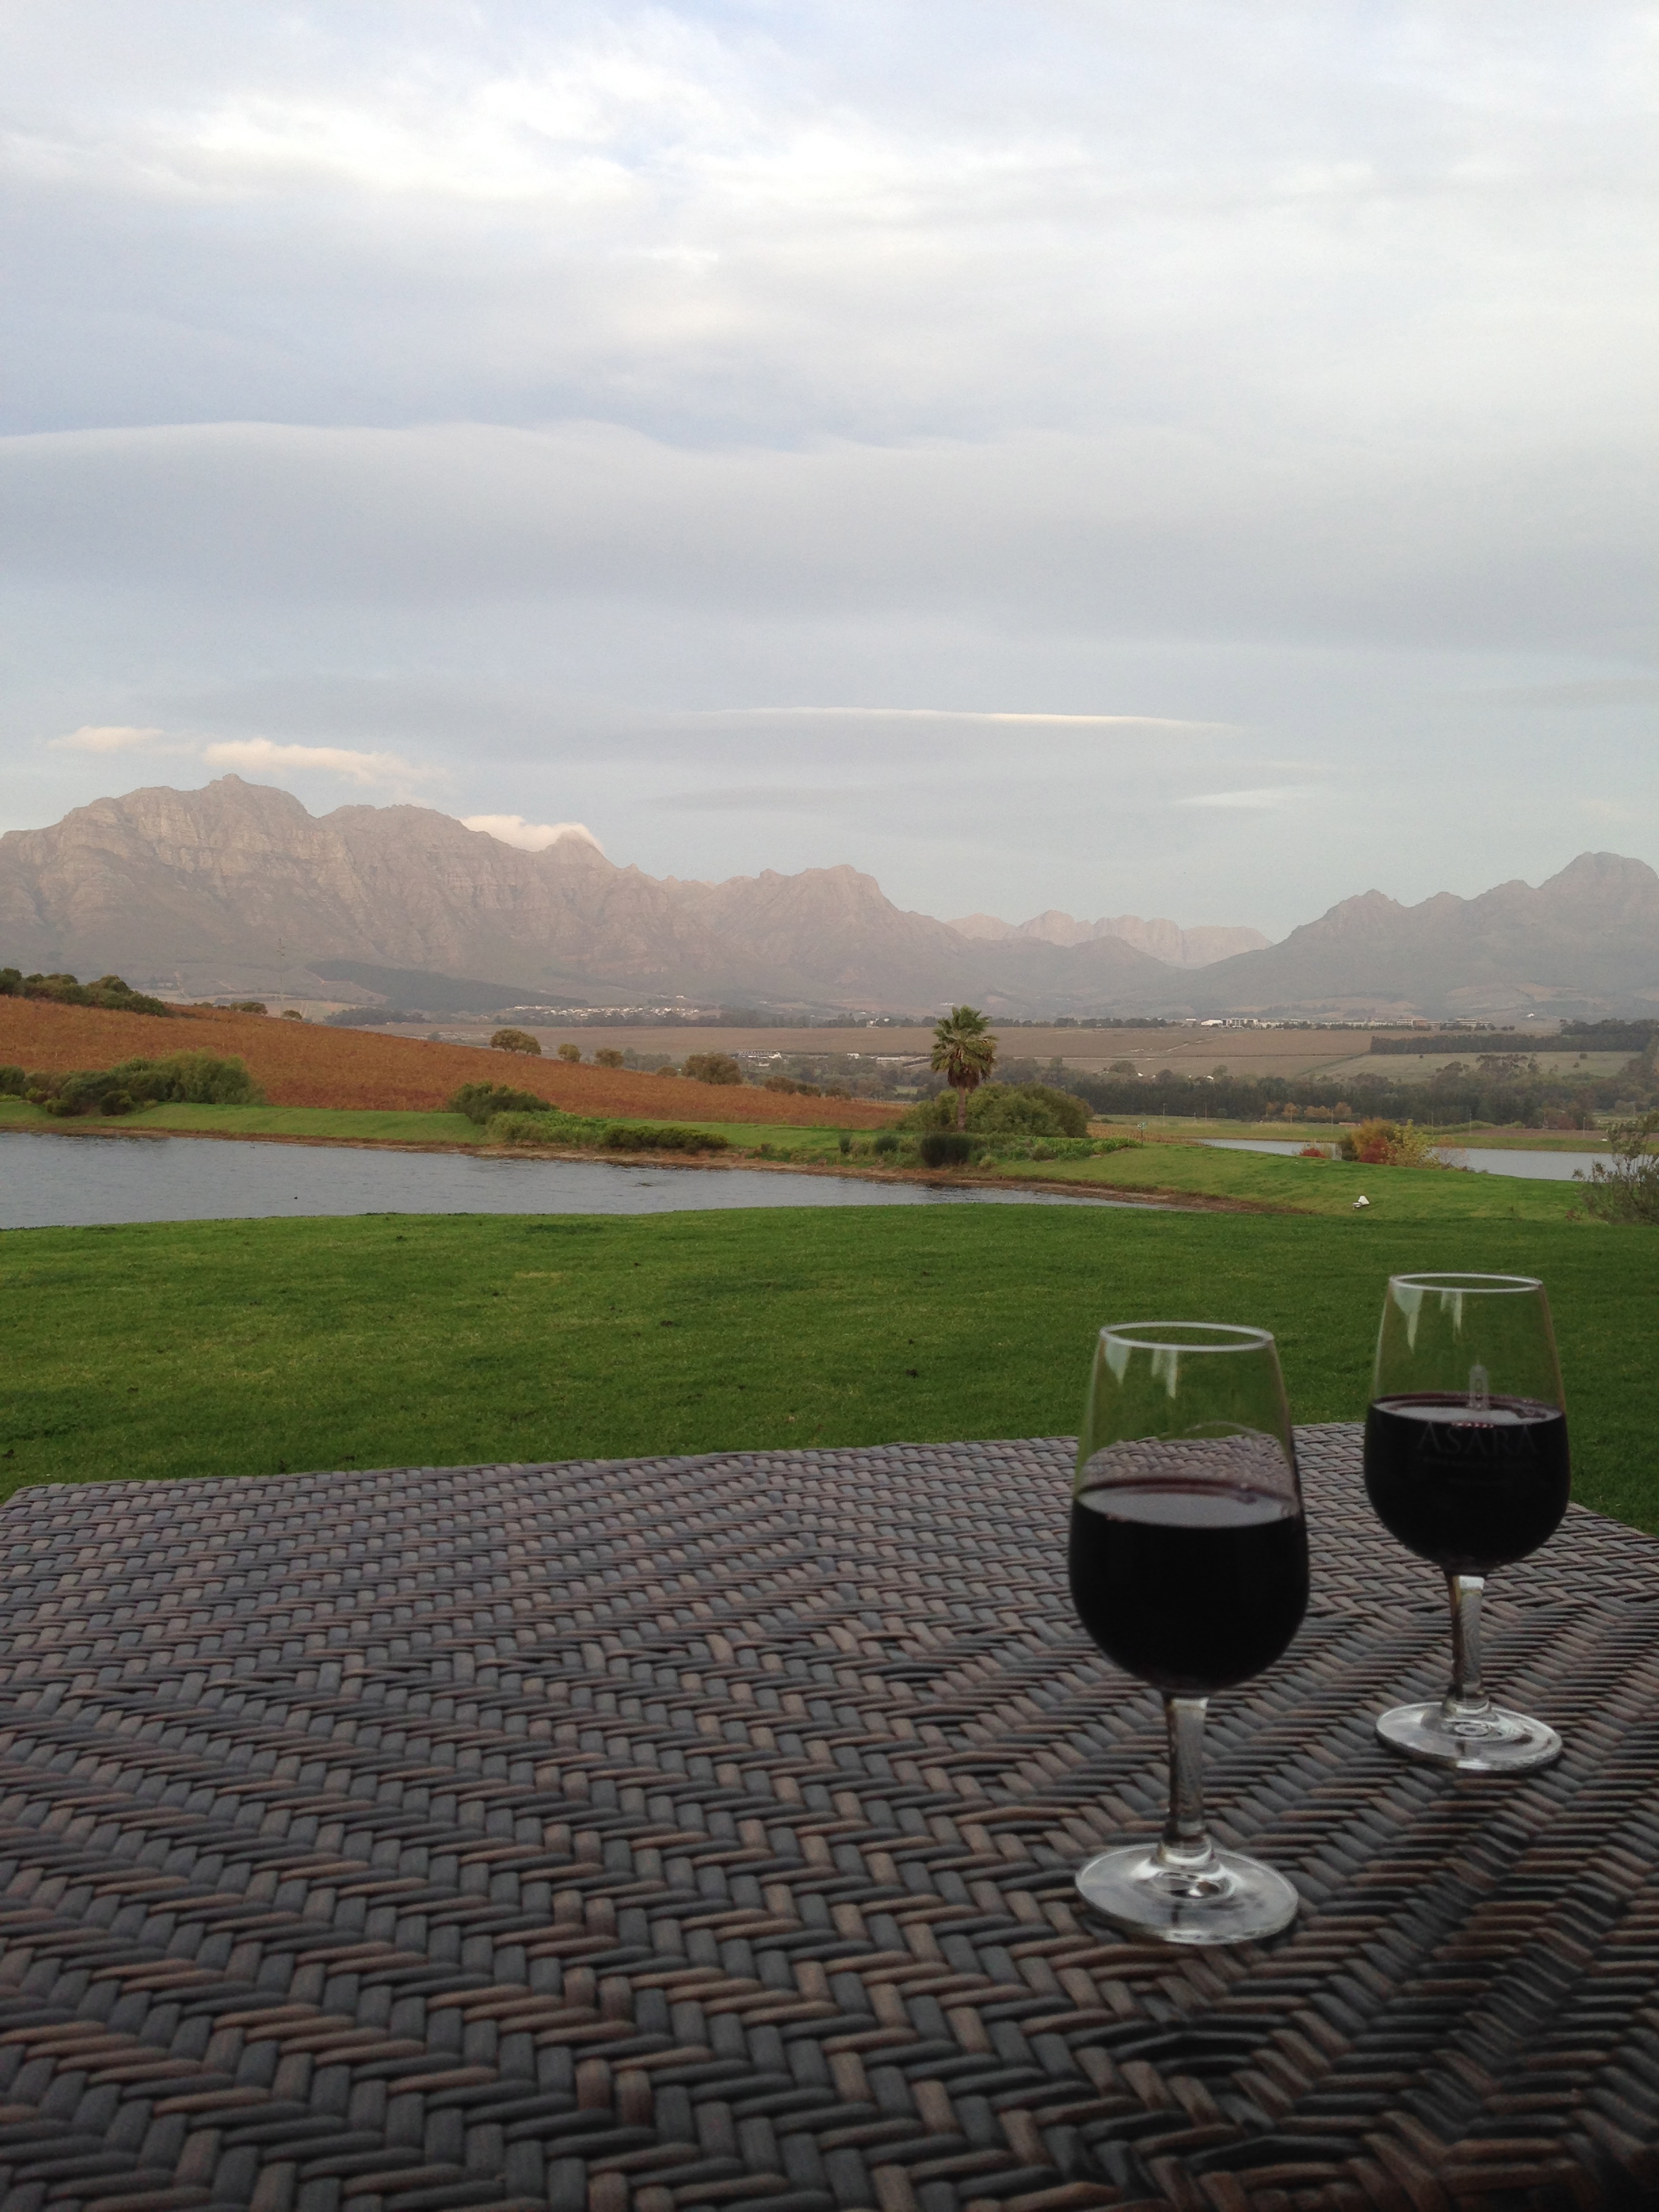 The most gorgeous winelands in the world? Quite possibly.